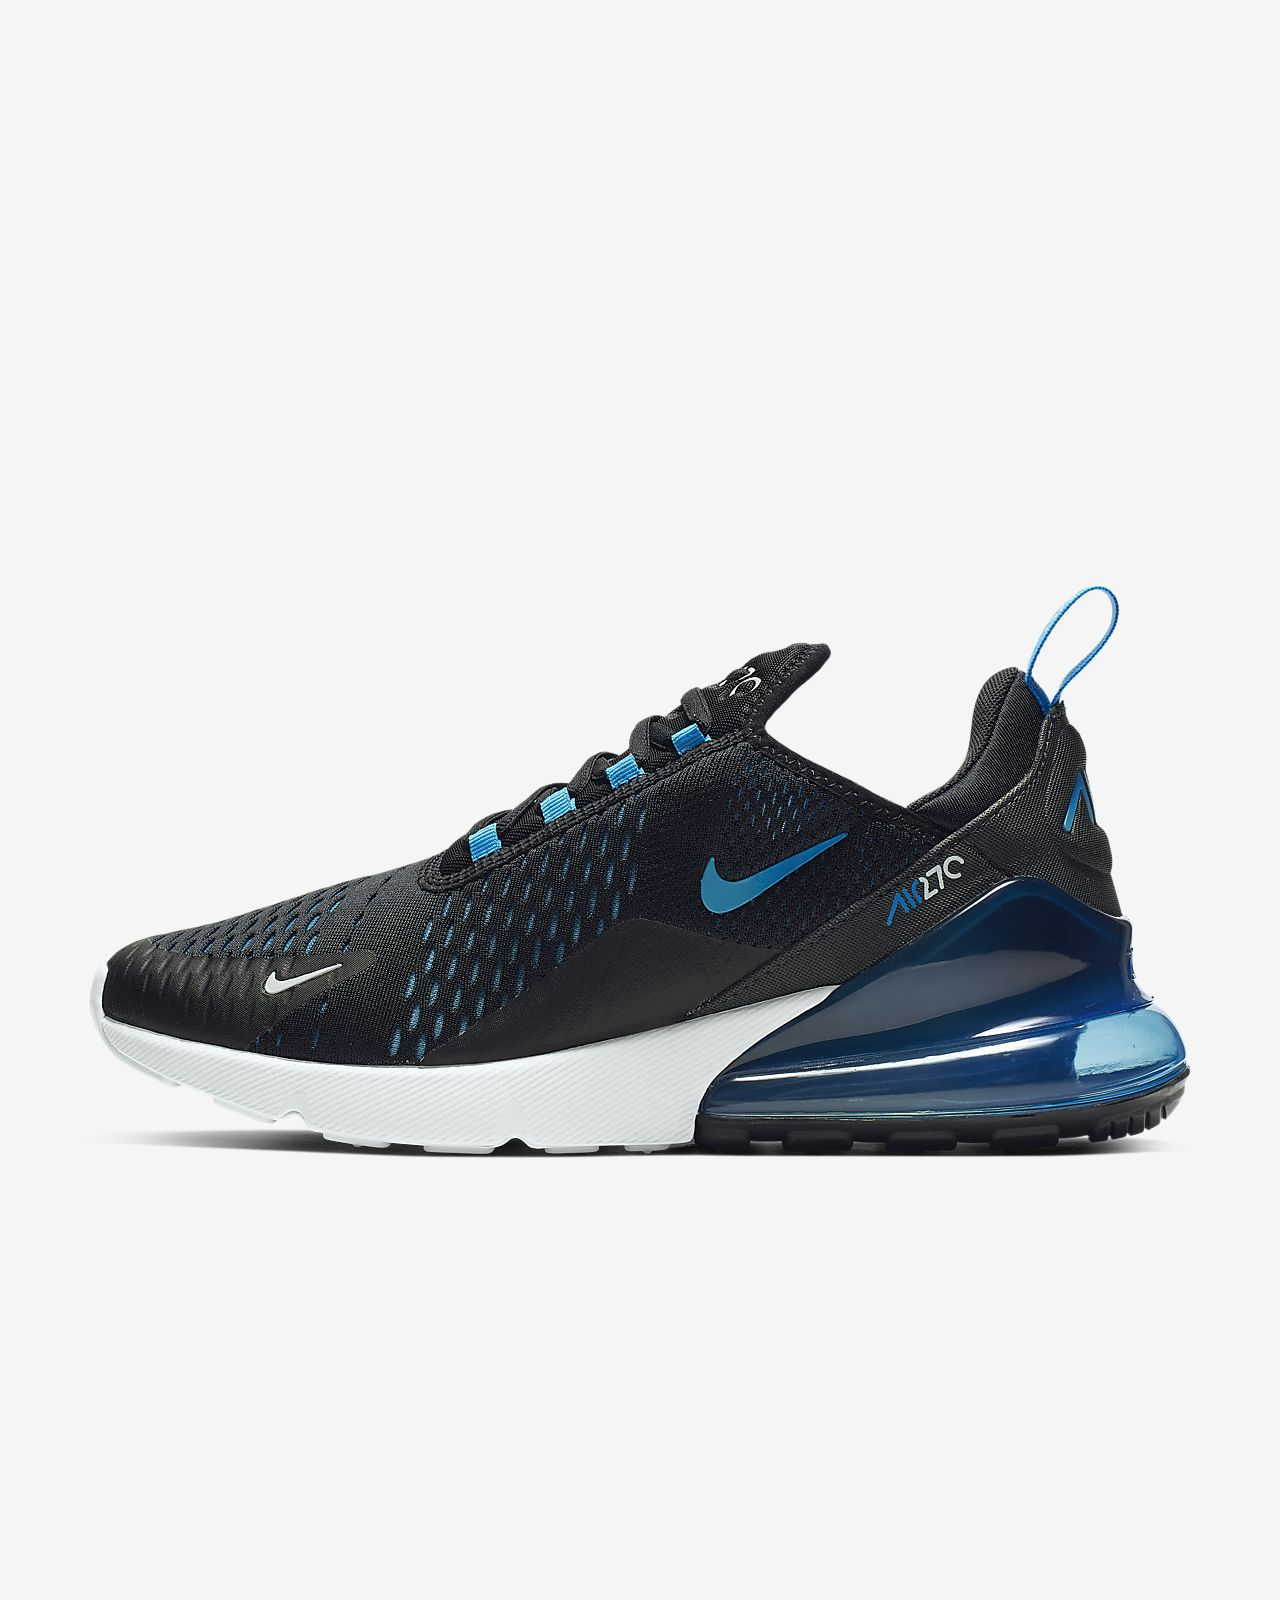 new concept 5fbe4 f1747 ... Nike Air Max 270 Herrenschuh